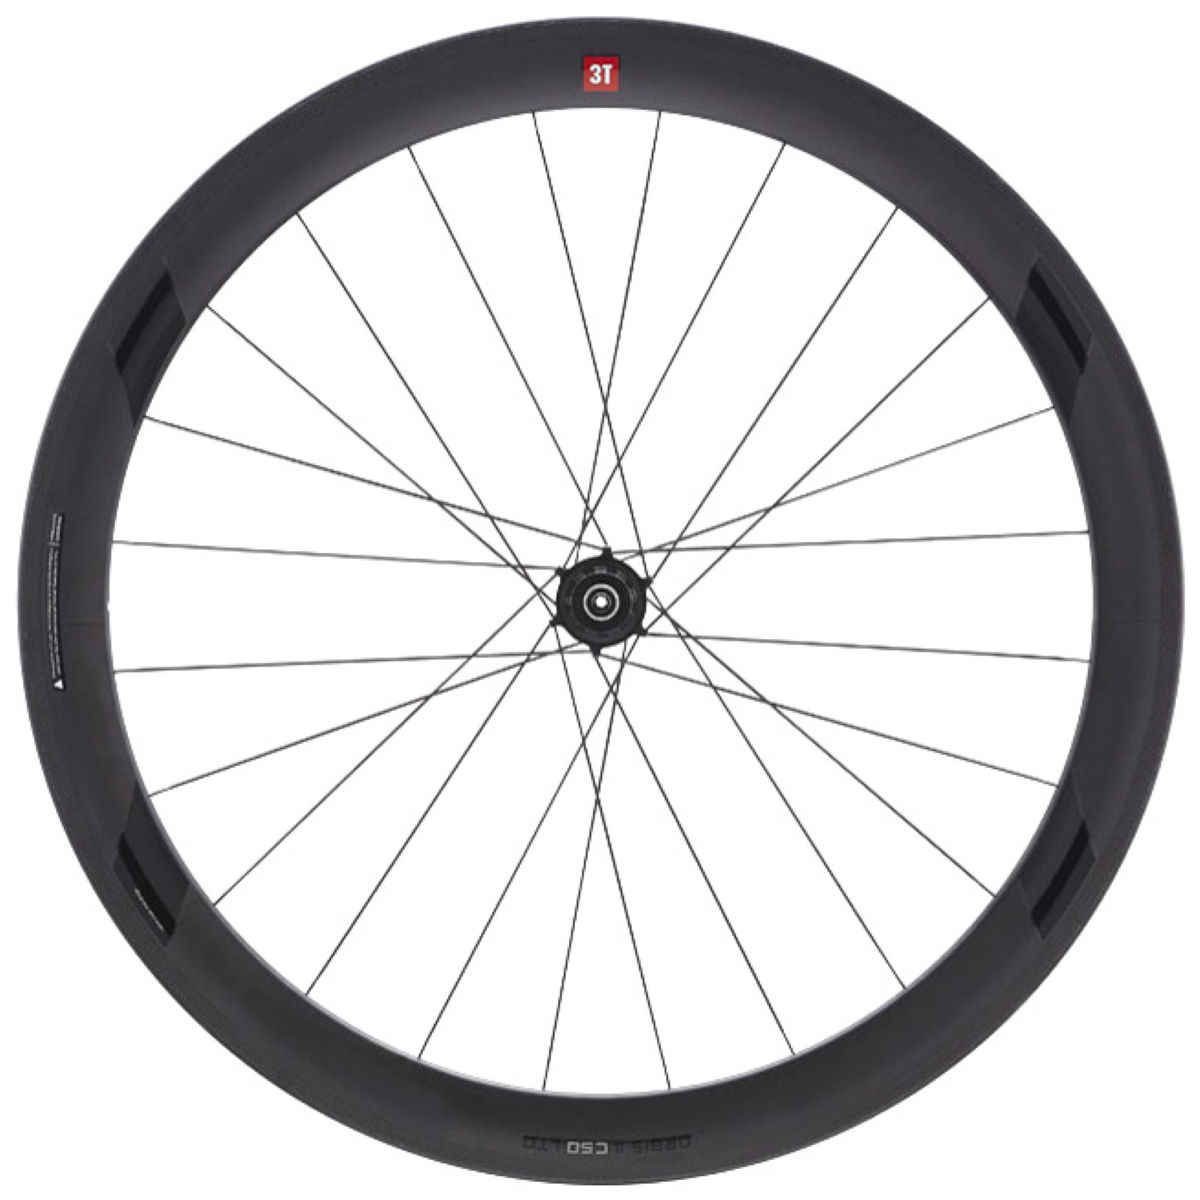 3T Orbis II C50 LTD Stealth Rear Wheel - Ruedas traseras